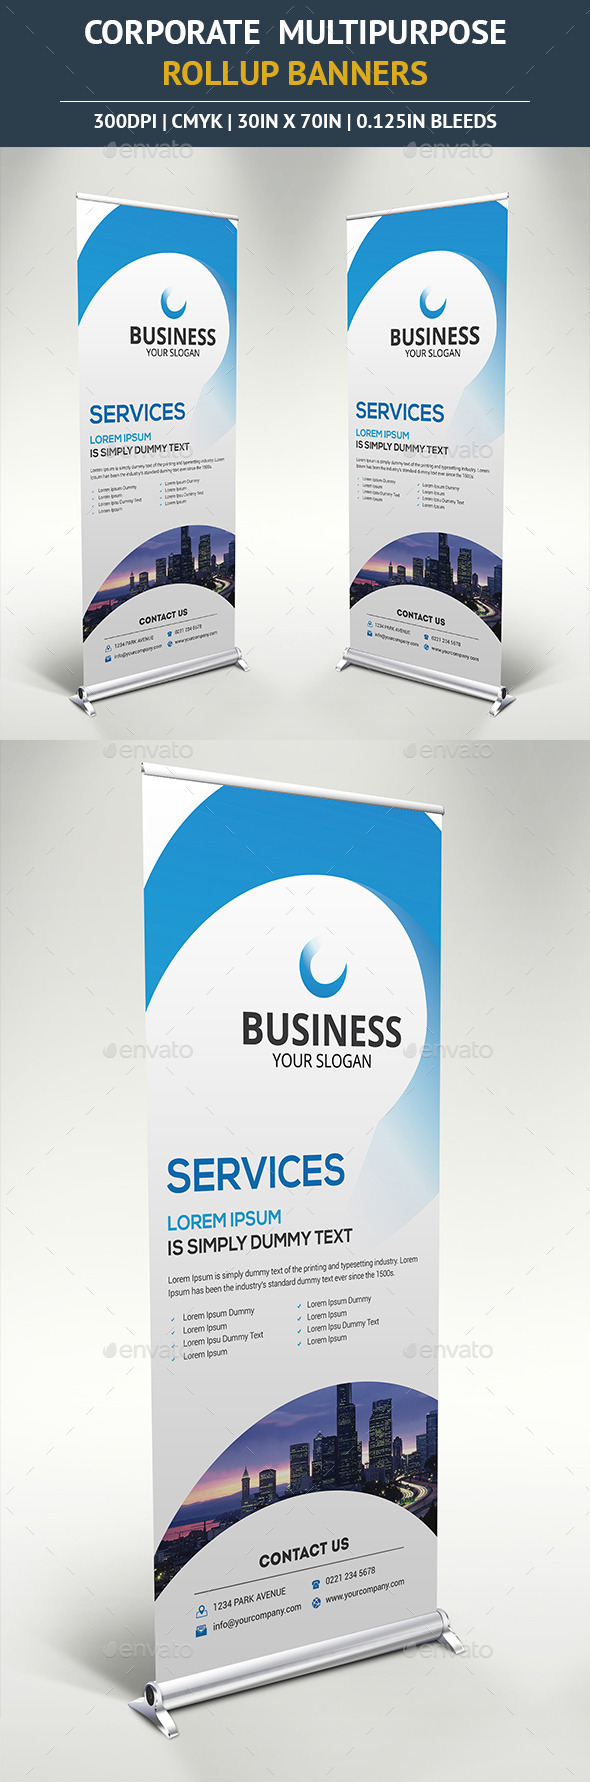 Corporate Rollup Banner Vol4 - Signage Print Templates